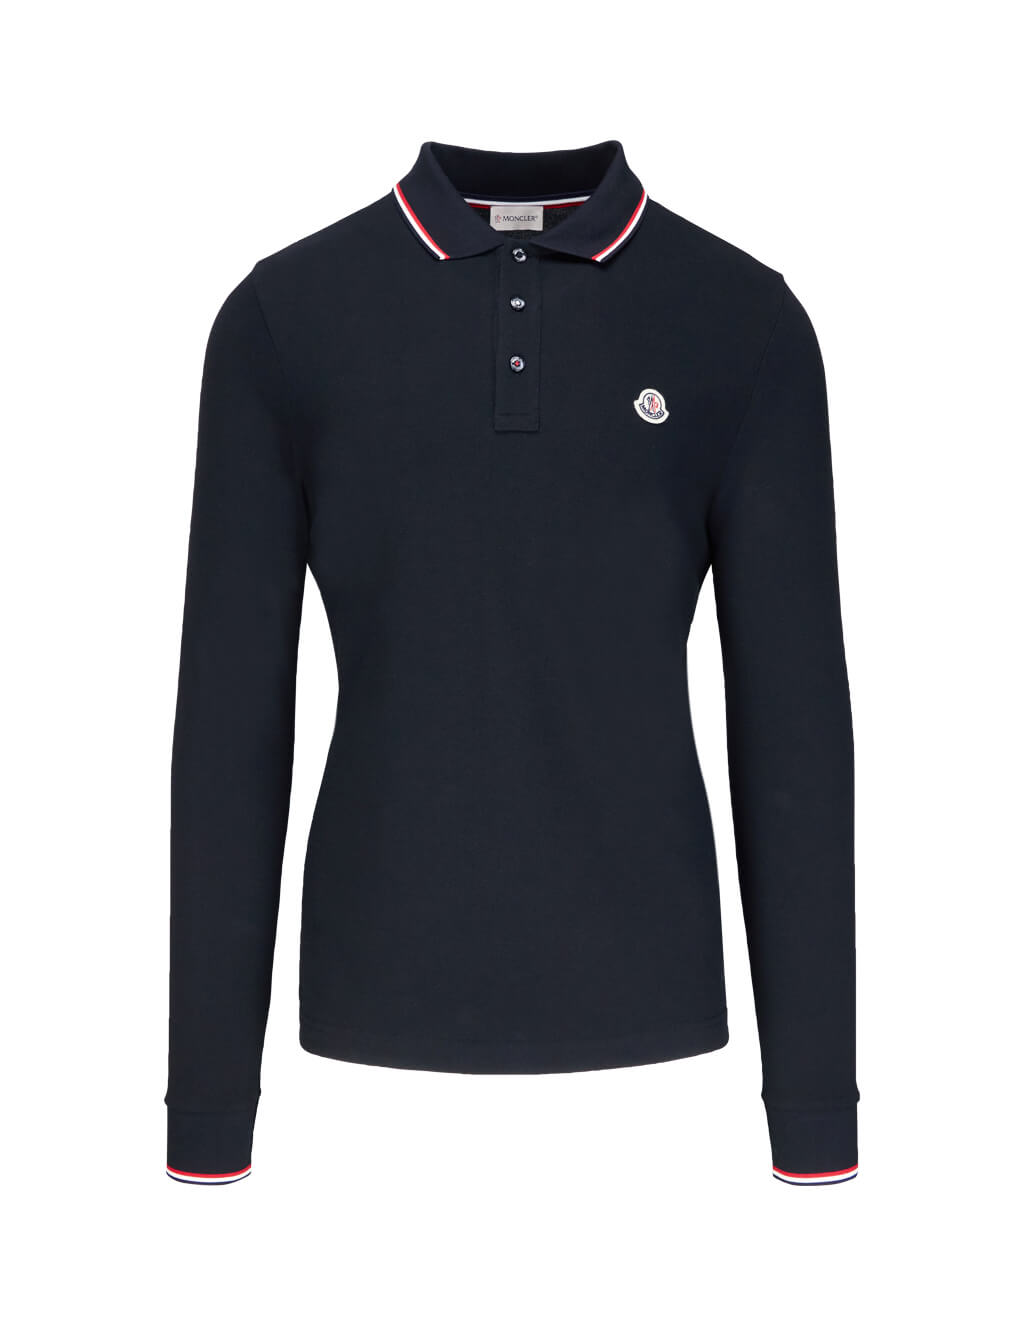 3d9e21460 Moncler Navy Blue Long Sleeve Polo Shirt | GIULIOFASHION.COM ...